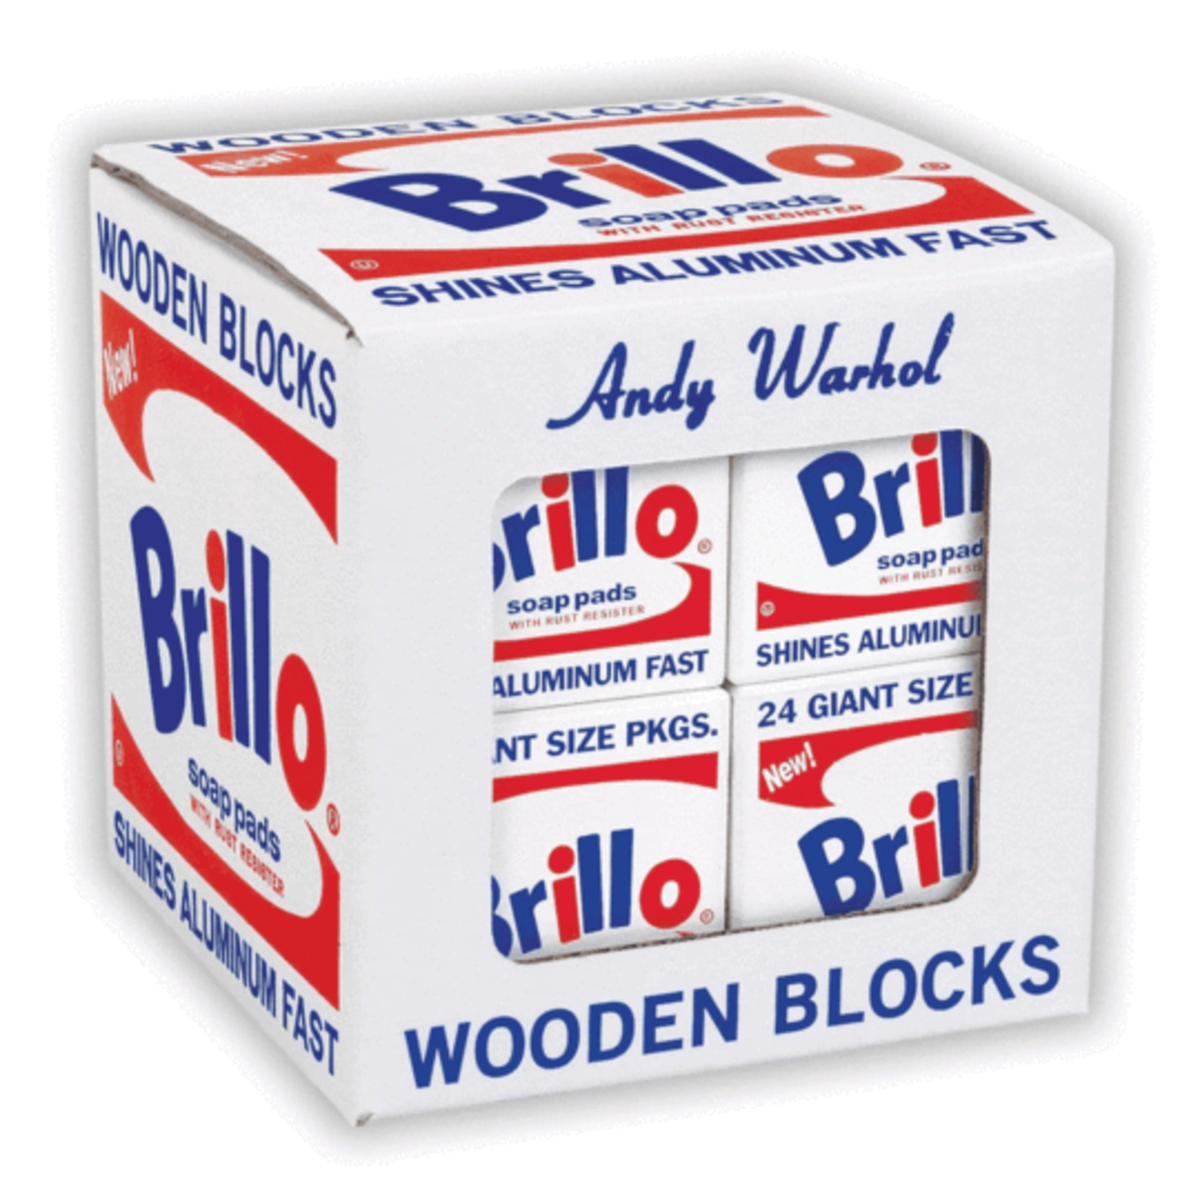 andy-warhol-brillo-wooden-blocks-wooden-blocks-mudpuppy-634166_540x-1